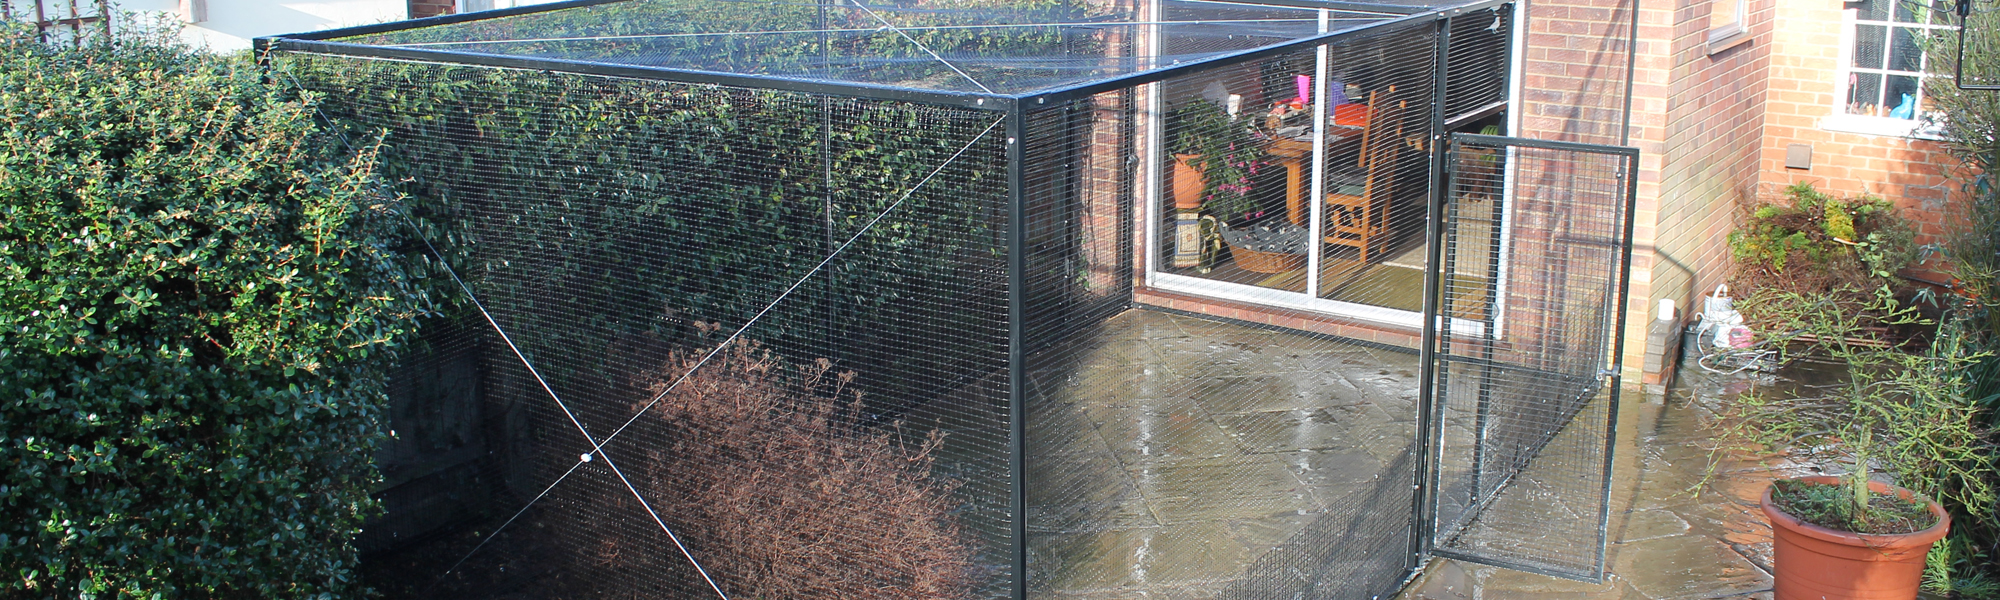 Cat Fencing For Balcony Image And Attic Aanneenhaag